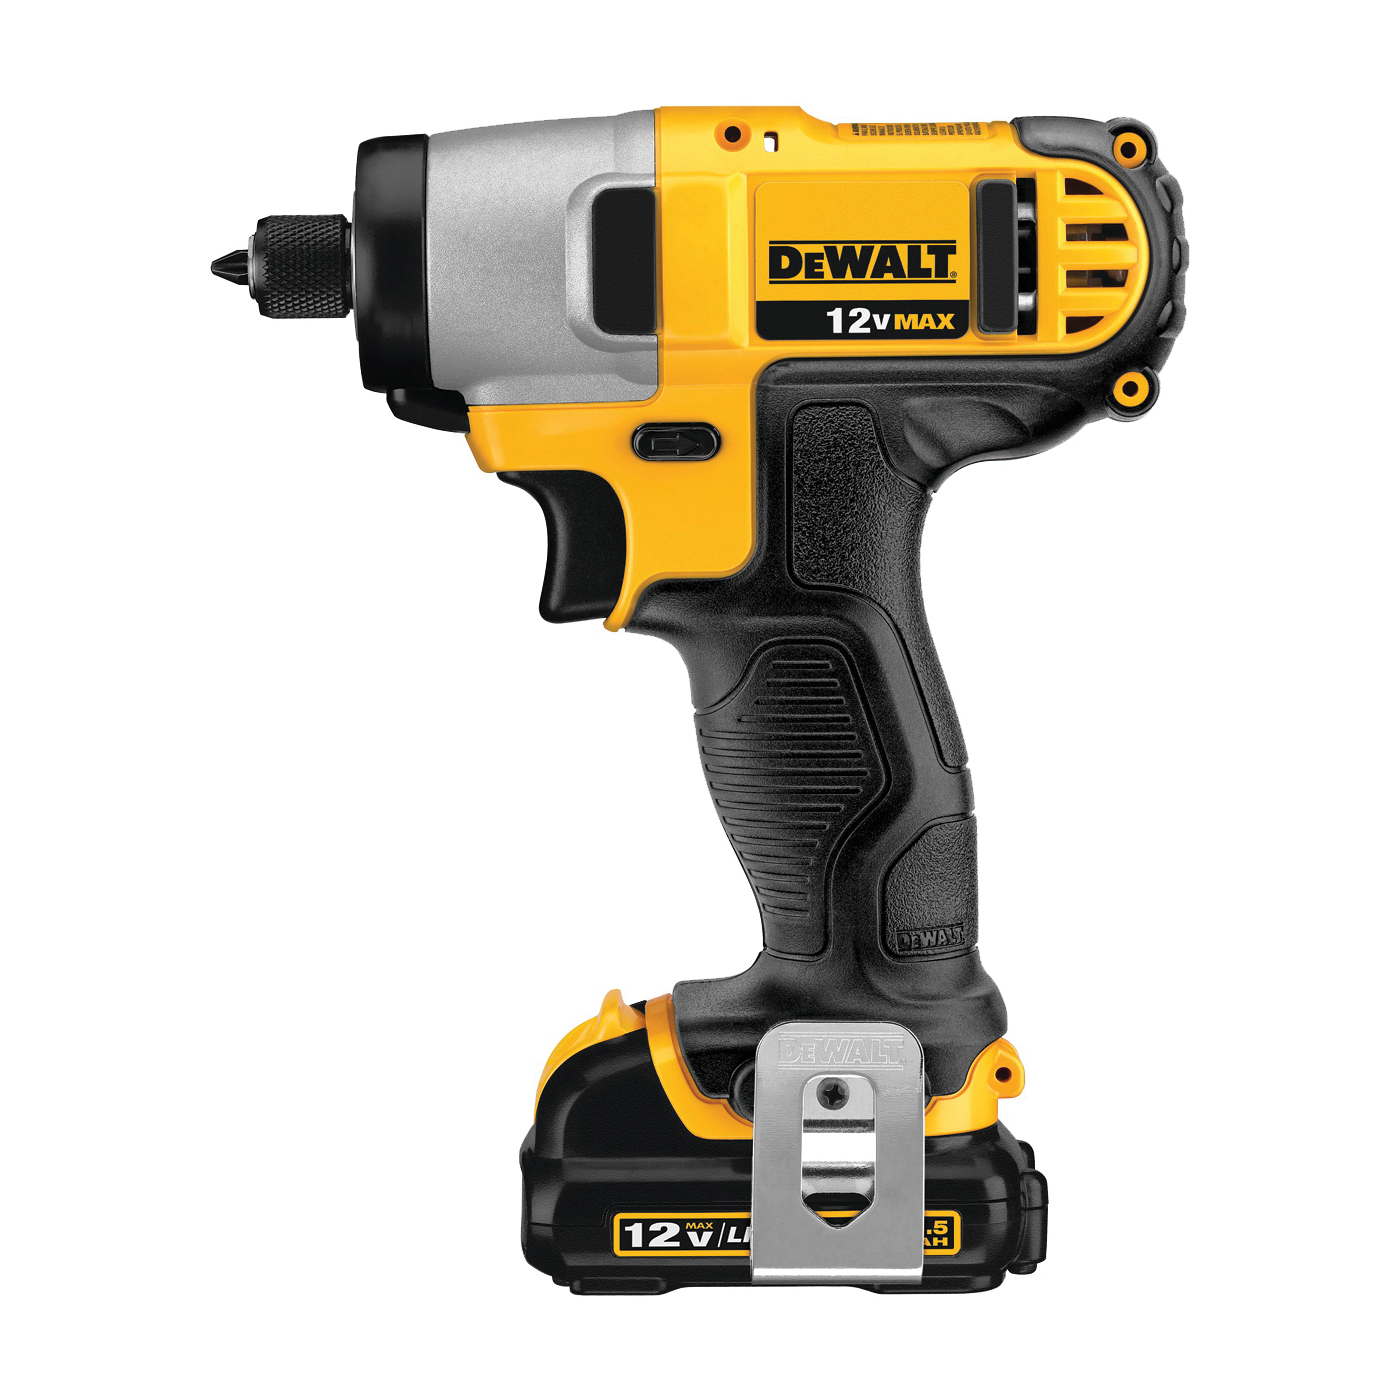 Picture of DeWALT DCF815S2 Impact Driver Kit, Kit, 12 V Battery, 1.3 Ah, 1/4 in Drive, Hex Drive, 3400 ipm IPM